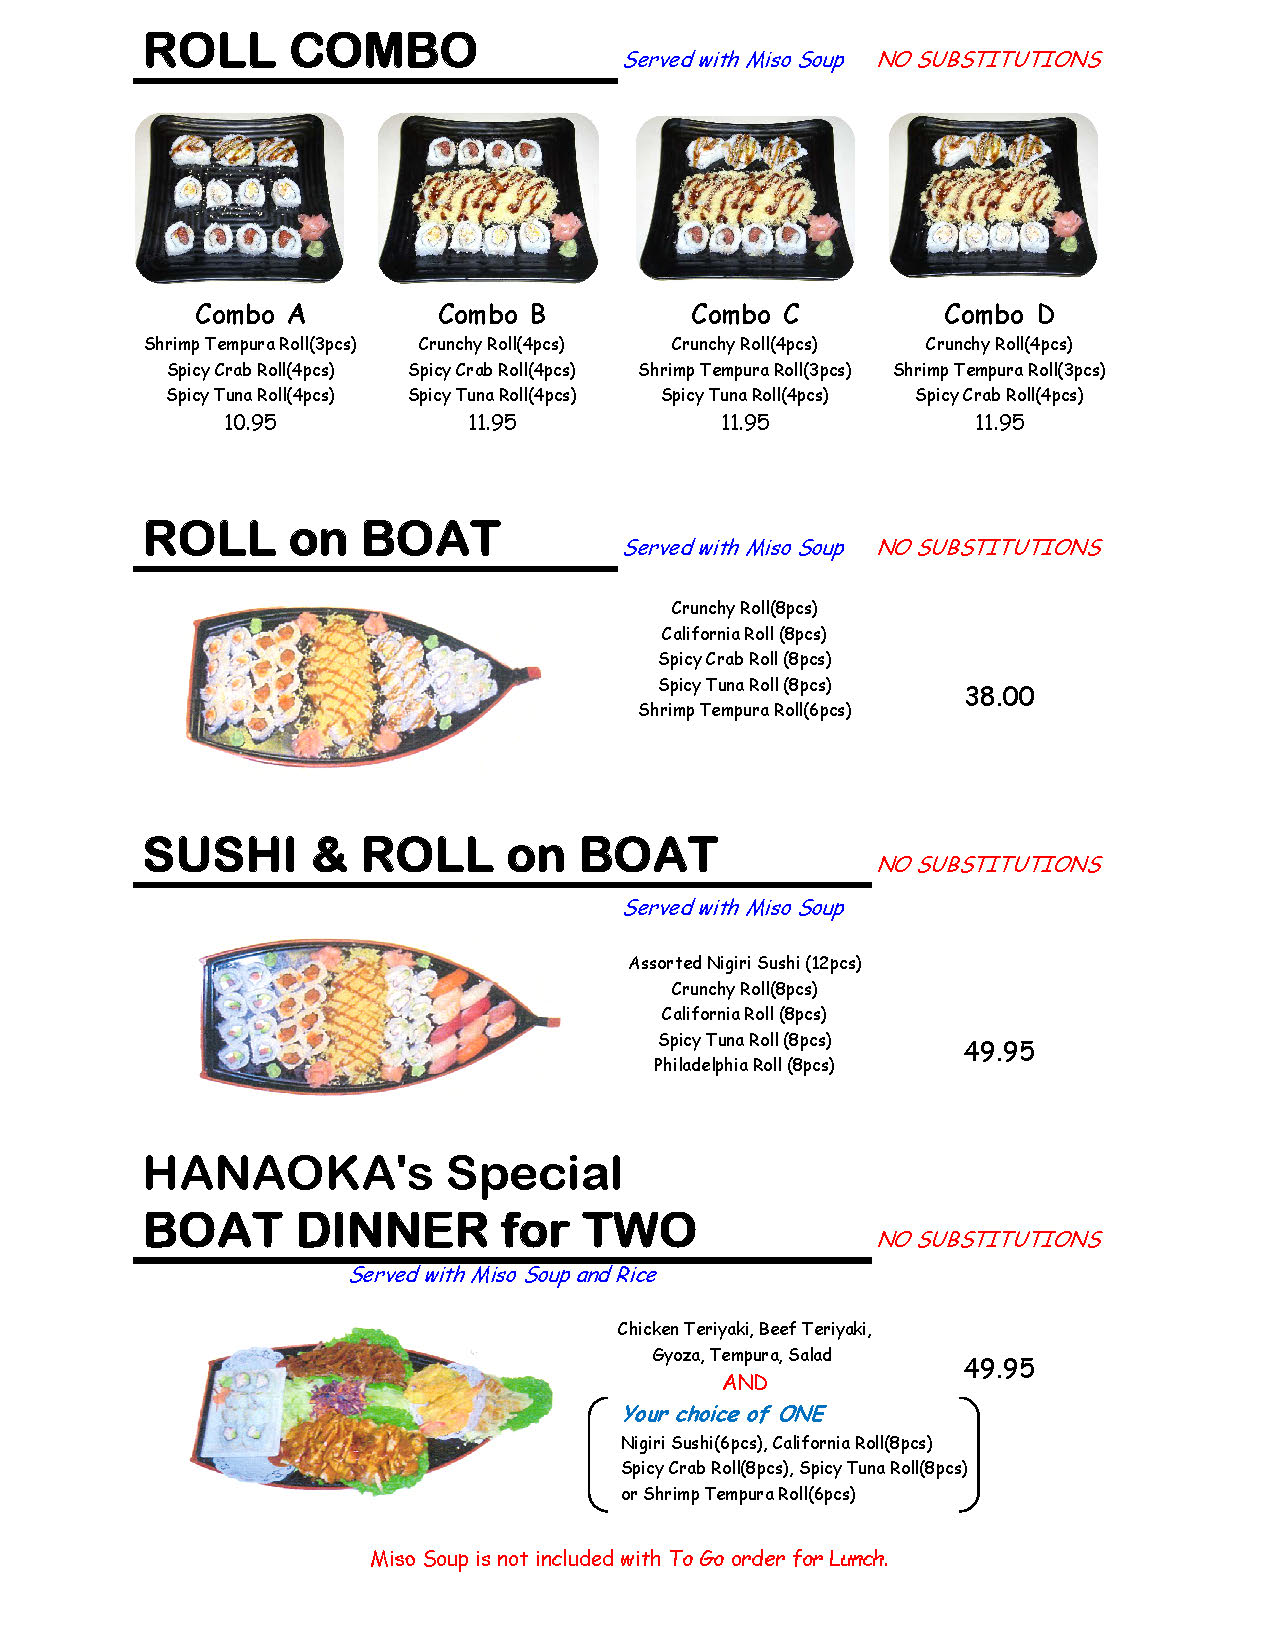 roll combo, roll on boat, sushi & roll on boat, Hanaoka's special boat differ for two